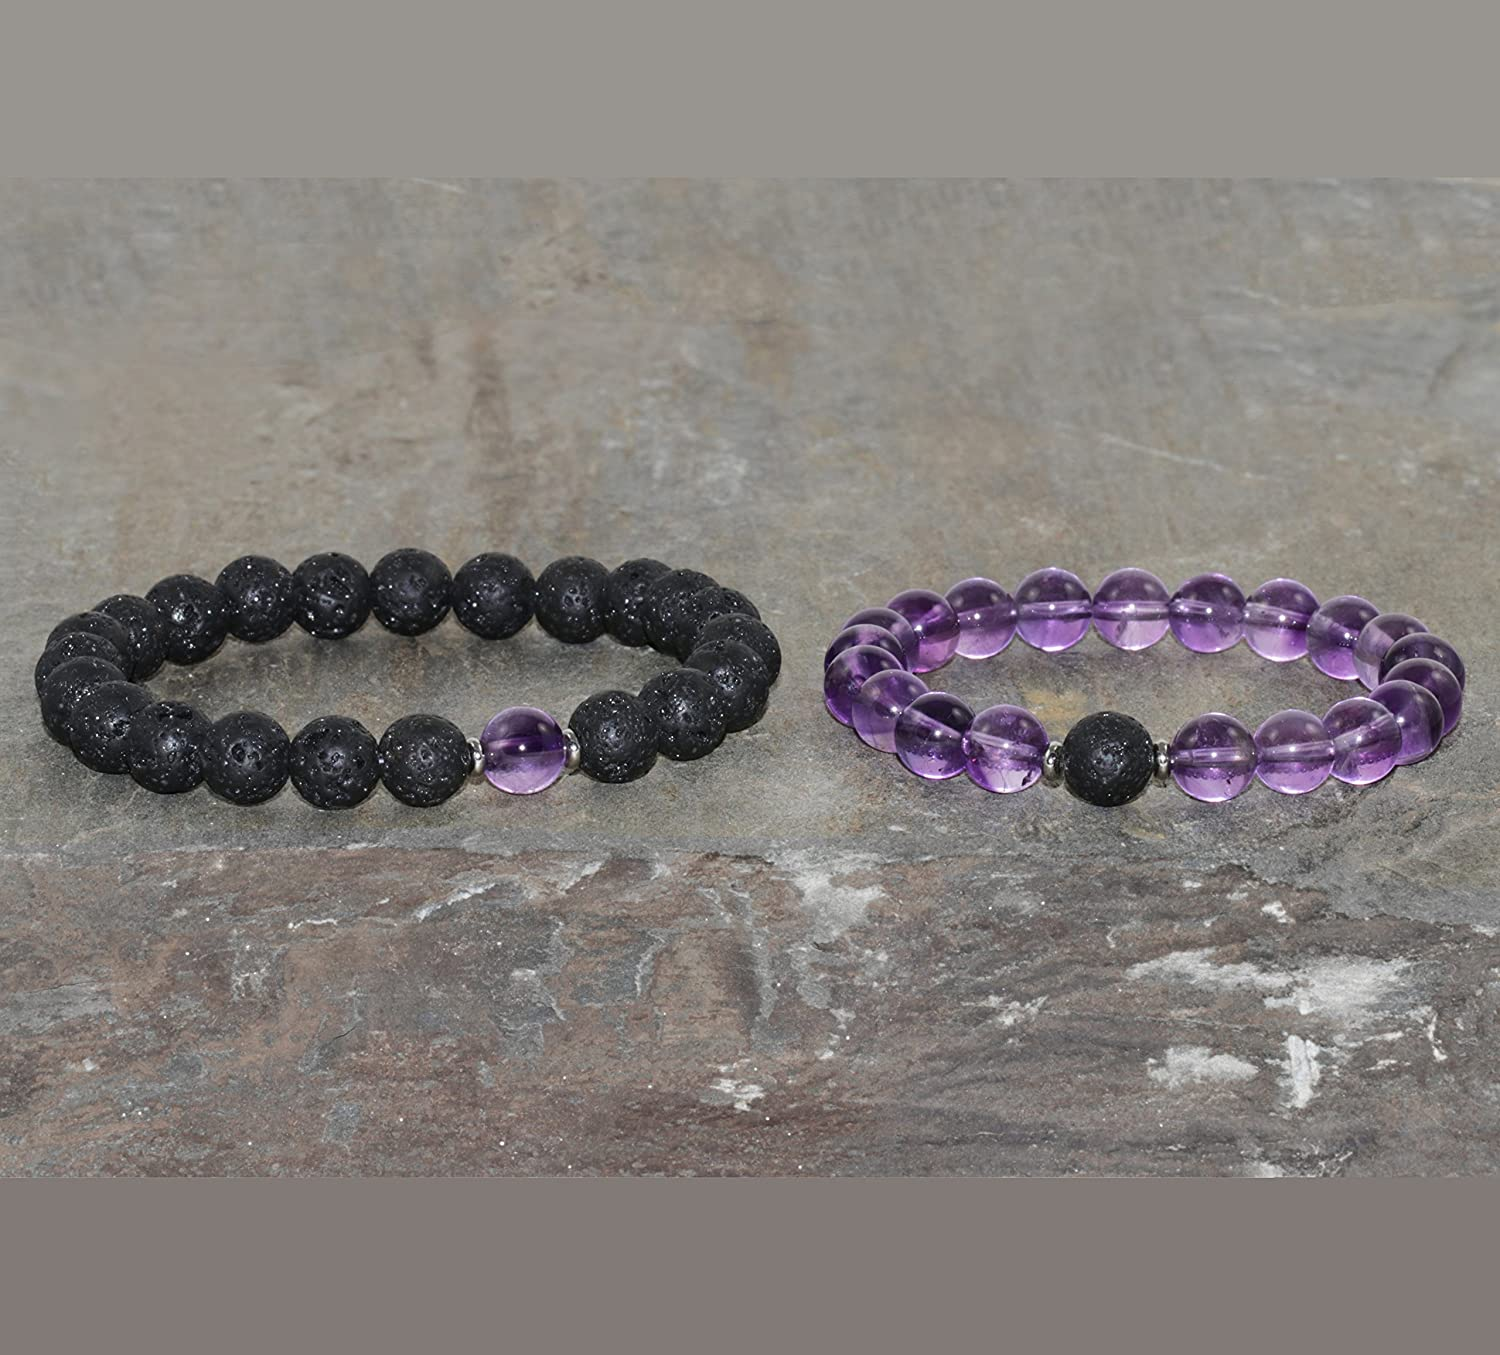 d0a12b1104c6 Amazon.com  Amethyst and Lava Couples Bracelets